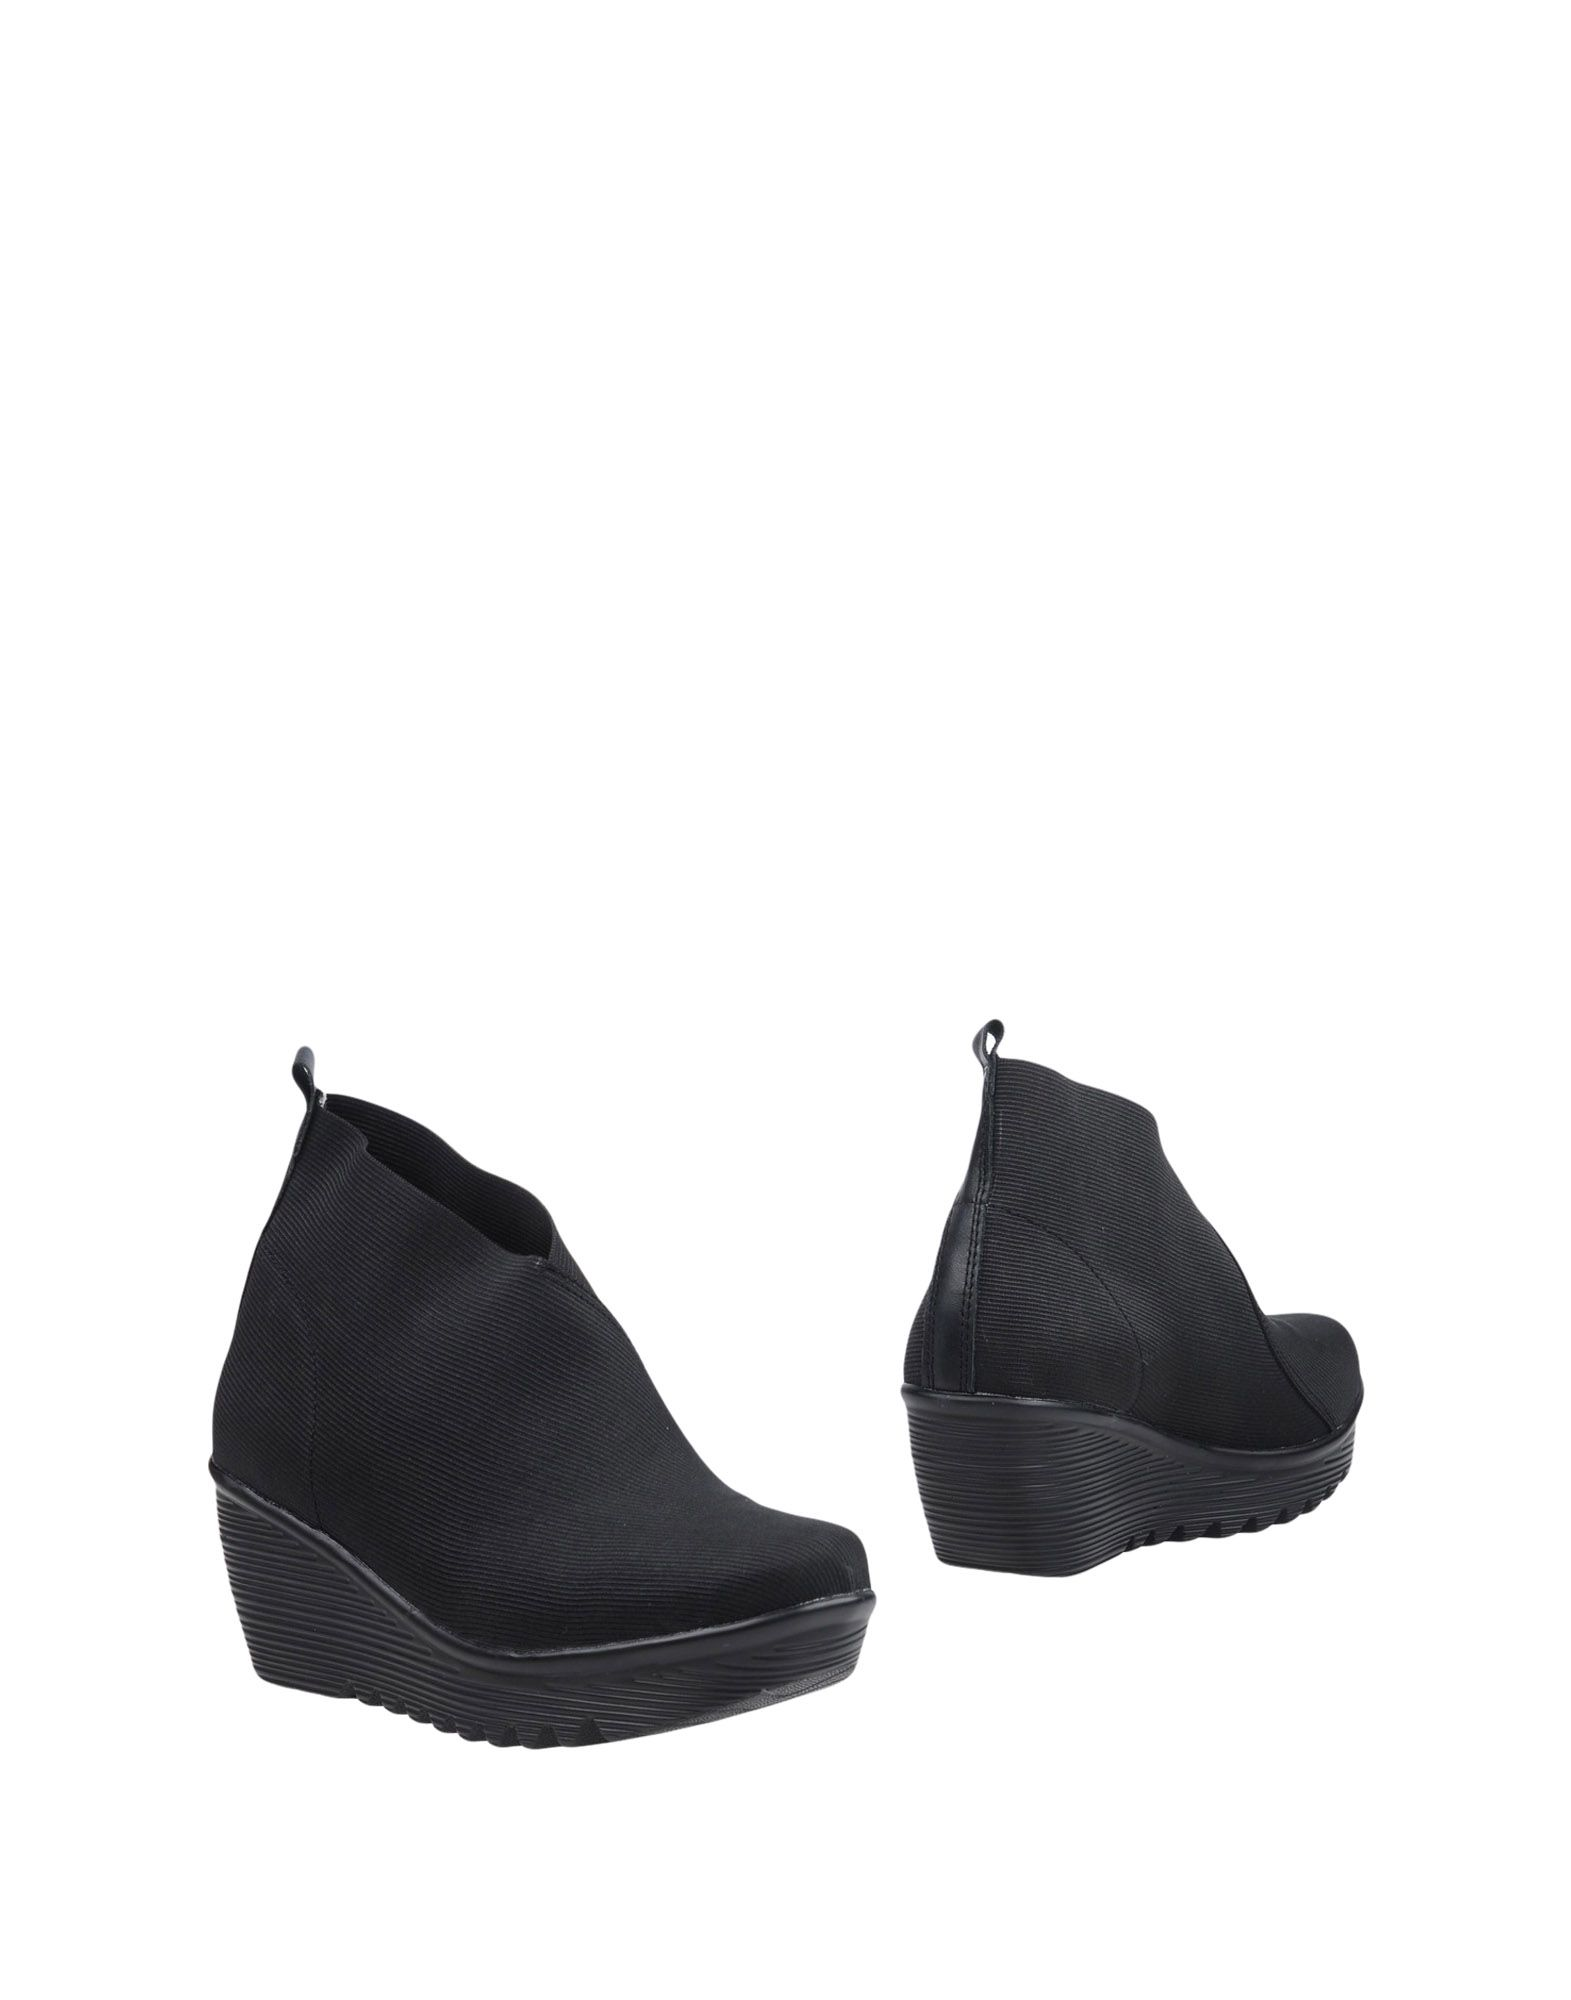 BERNIE MEV. Ankle boots. techno fabric, no appliqués, solid color, round toeline, wedge heel, leather lining, rubber cleated sole, contains non-textile parts of animal origin. Soft Leather, Textile fibers